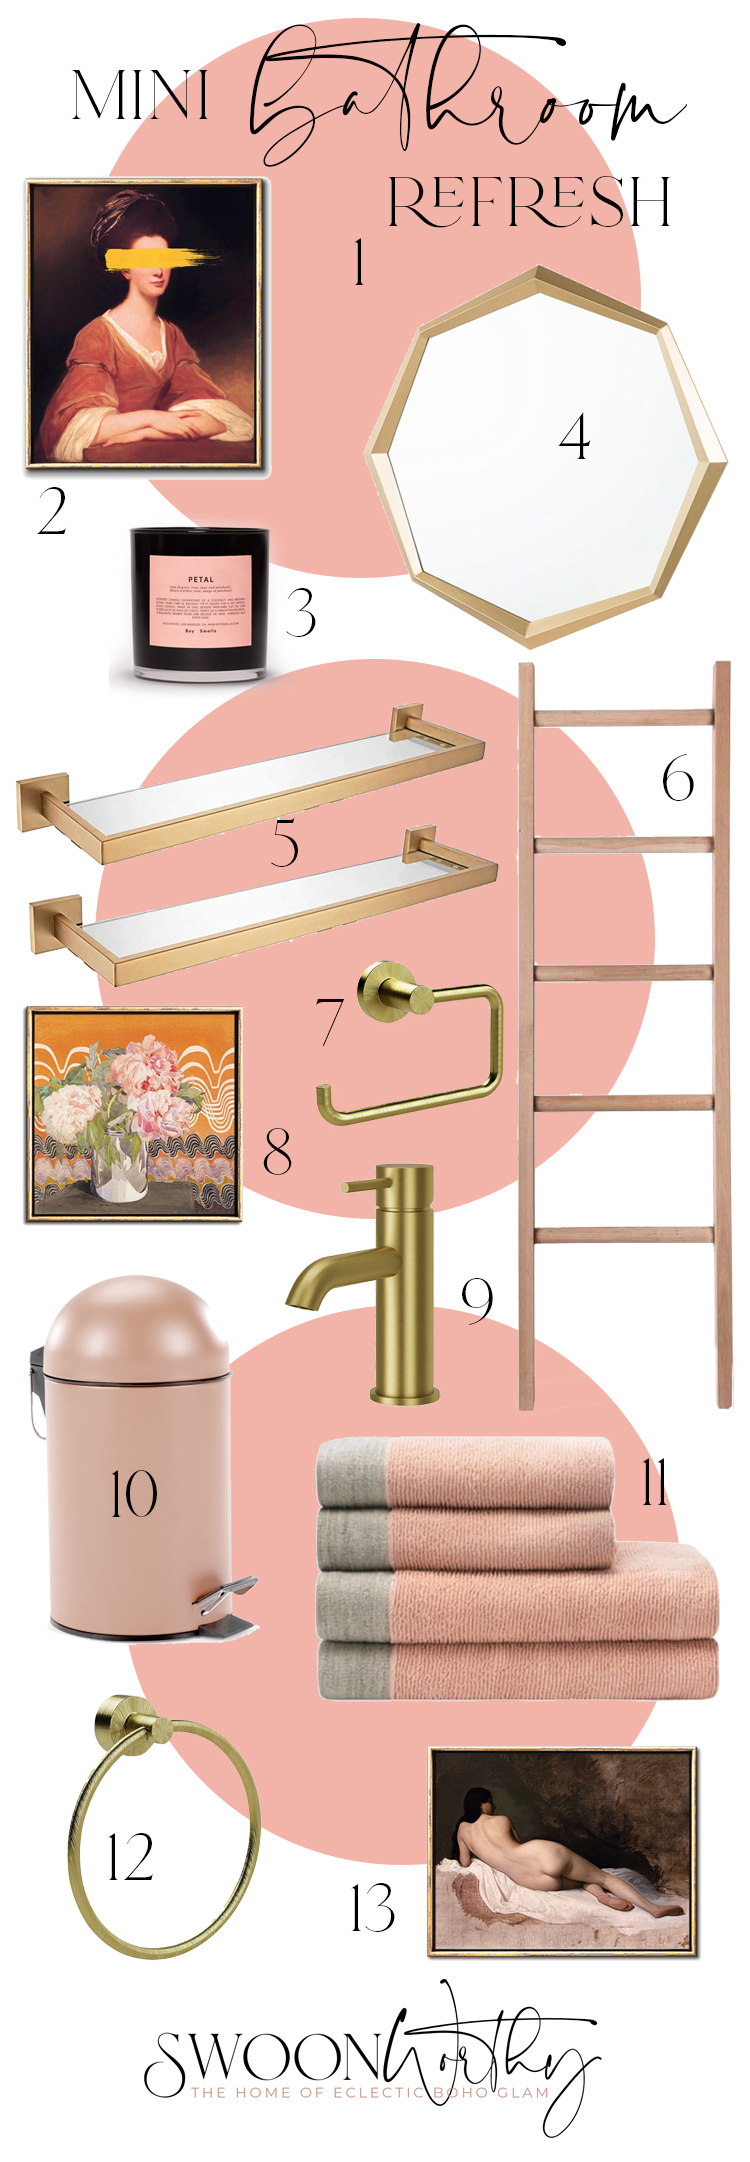 Mini Bathroom Refresh Mood Board in Peach and Gold